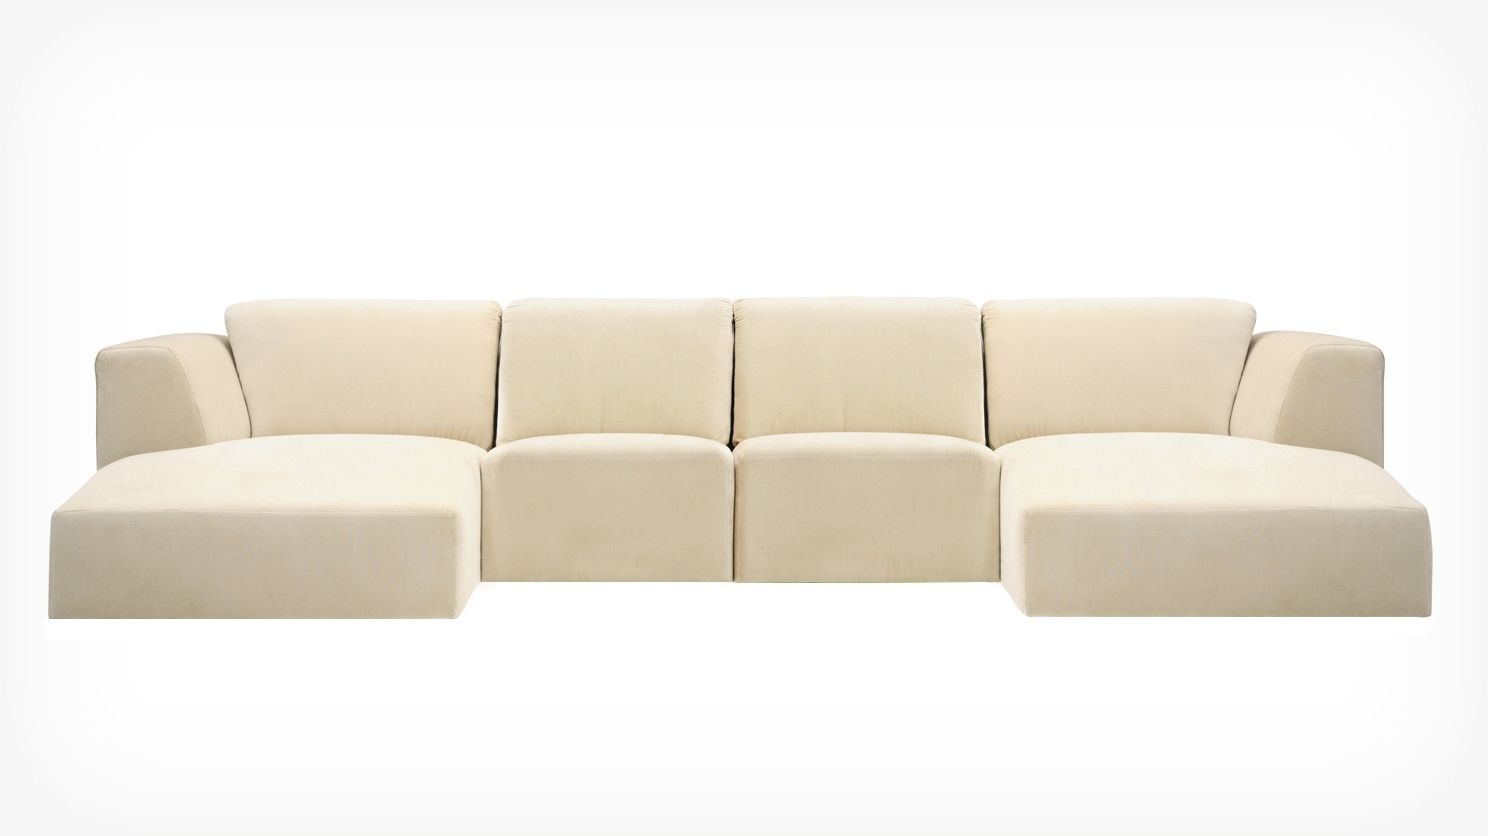 Eq3 | Morten 4 Piece Sectional Sofa With Chaise – Fabric Throughout Eq3 Sectional Sofas (View 8 of 10)